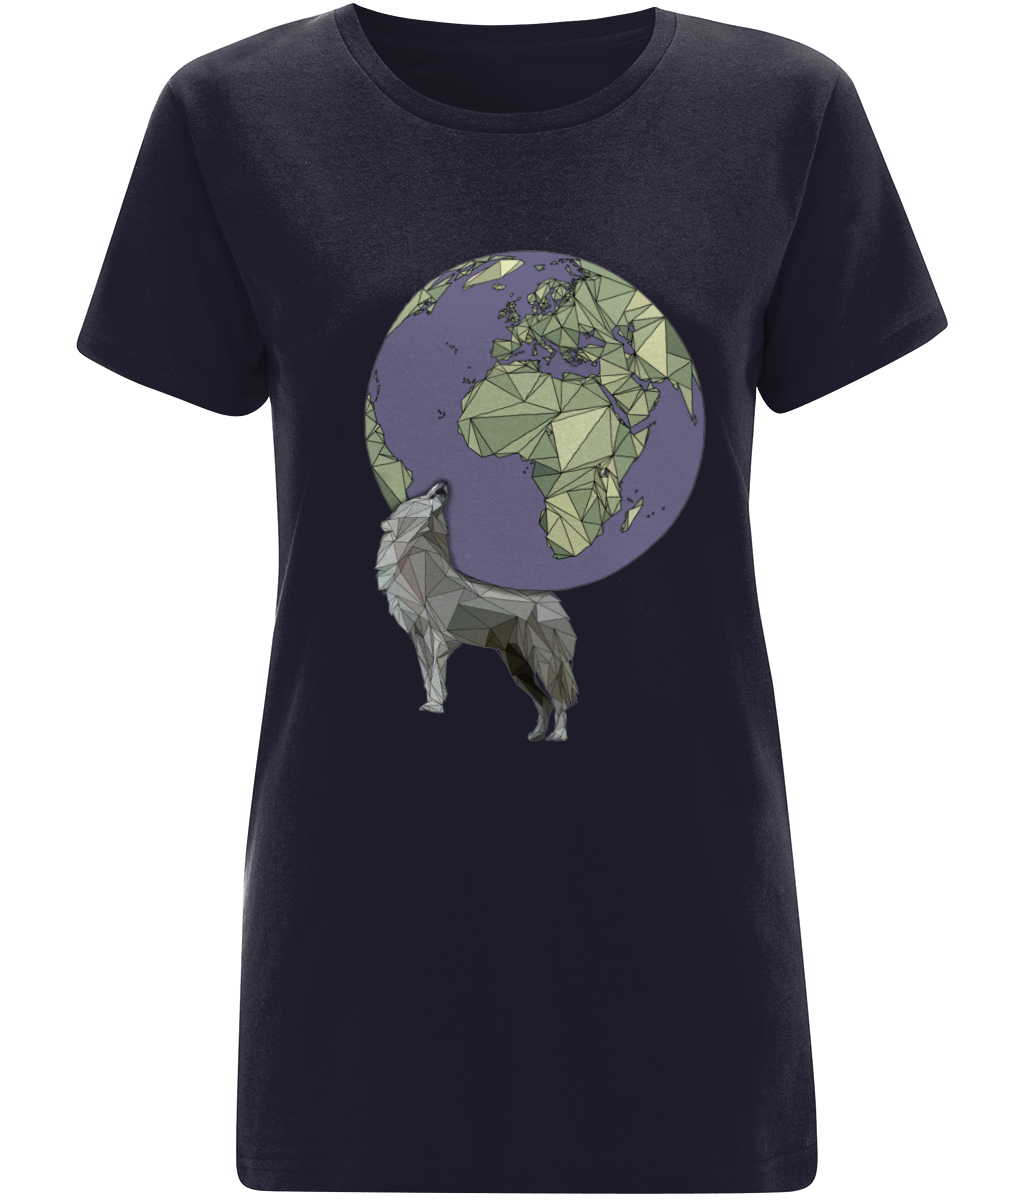 Atlas Women's Navy Tee